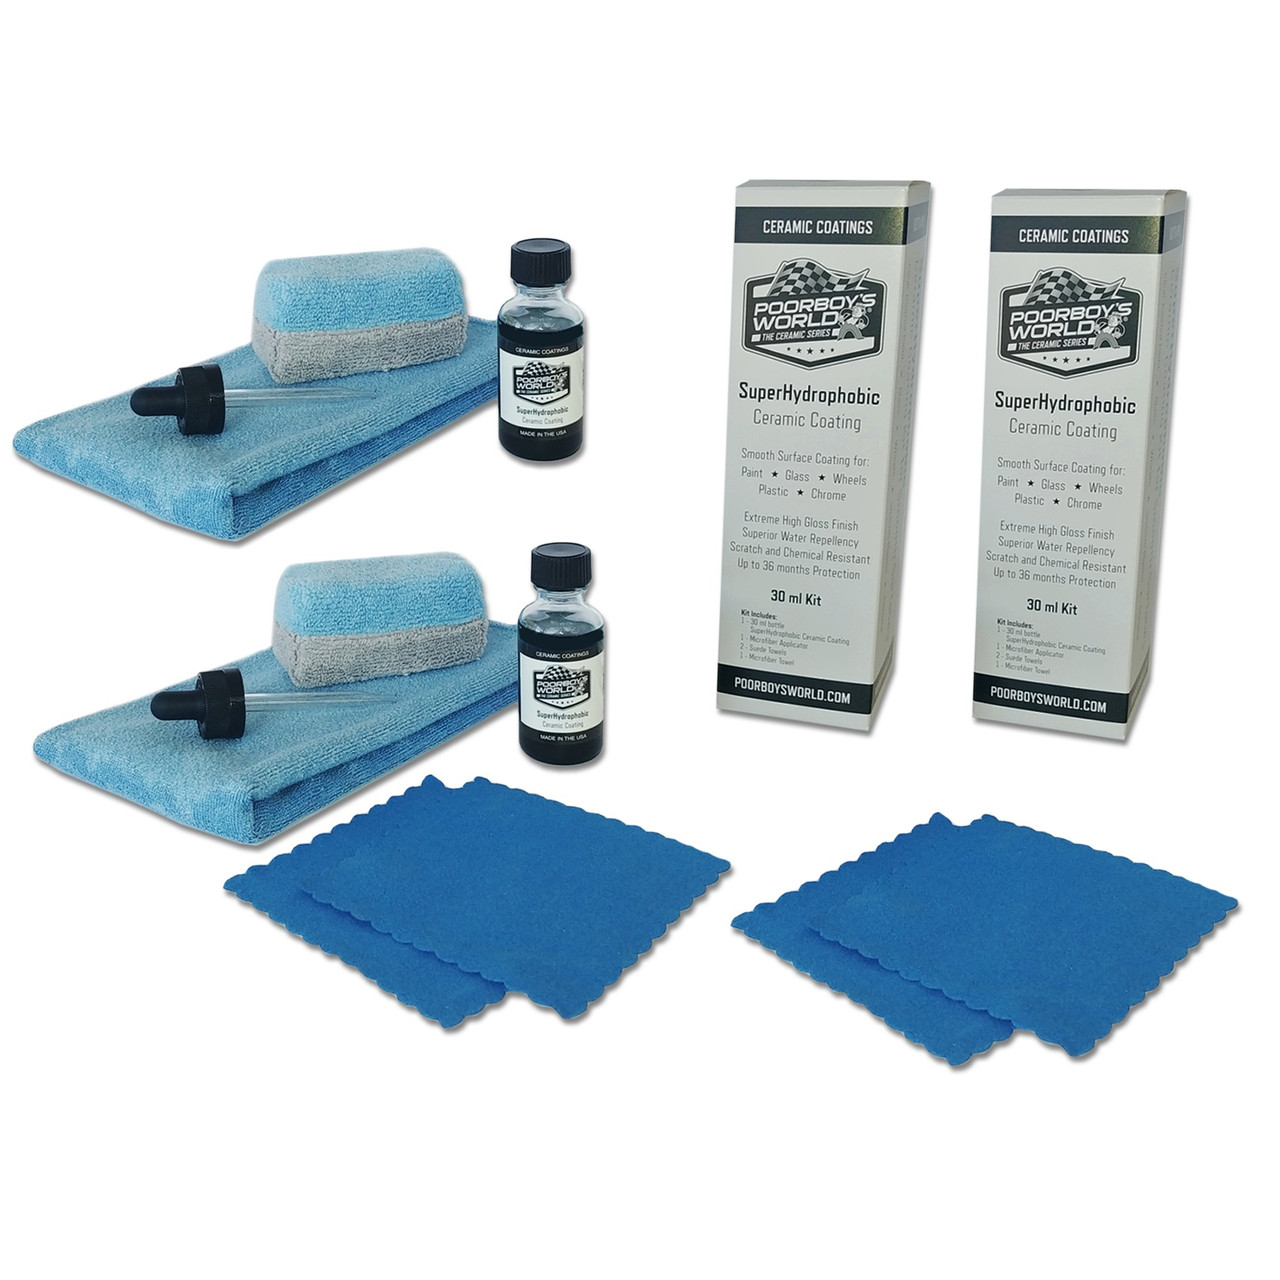 Poorboy's World SuperHydrophobic Ceramic Coating 60 ml Kit (30 ml x 2)